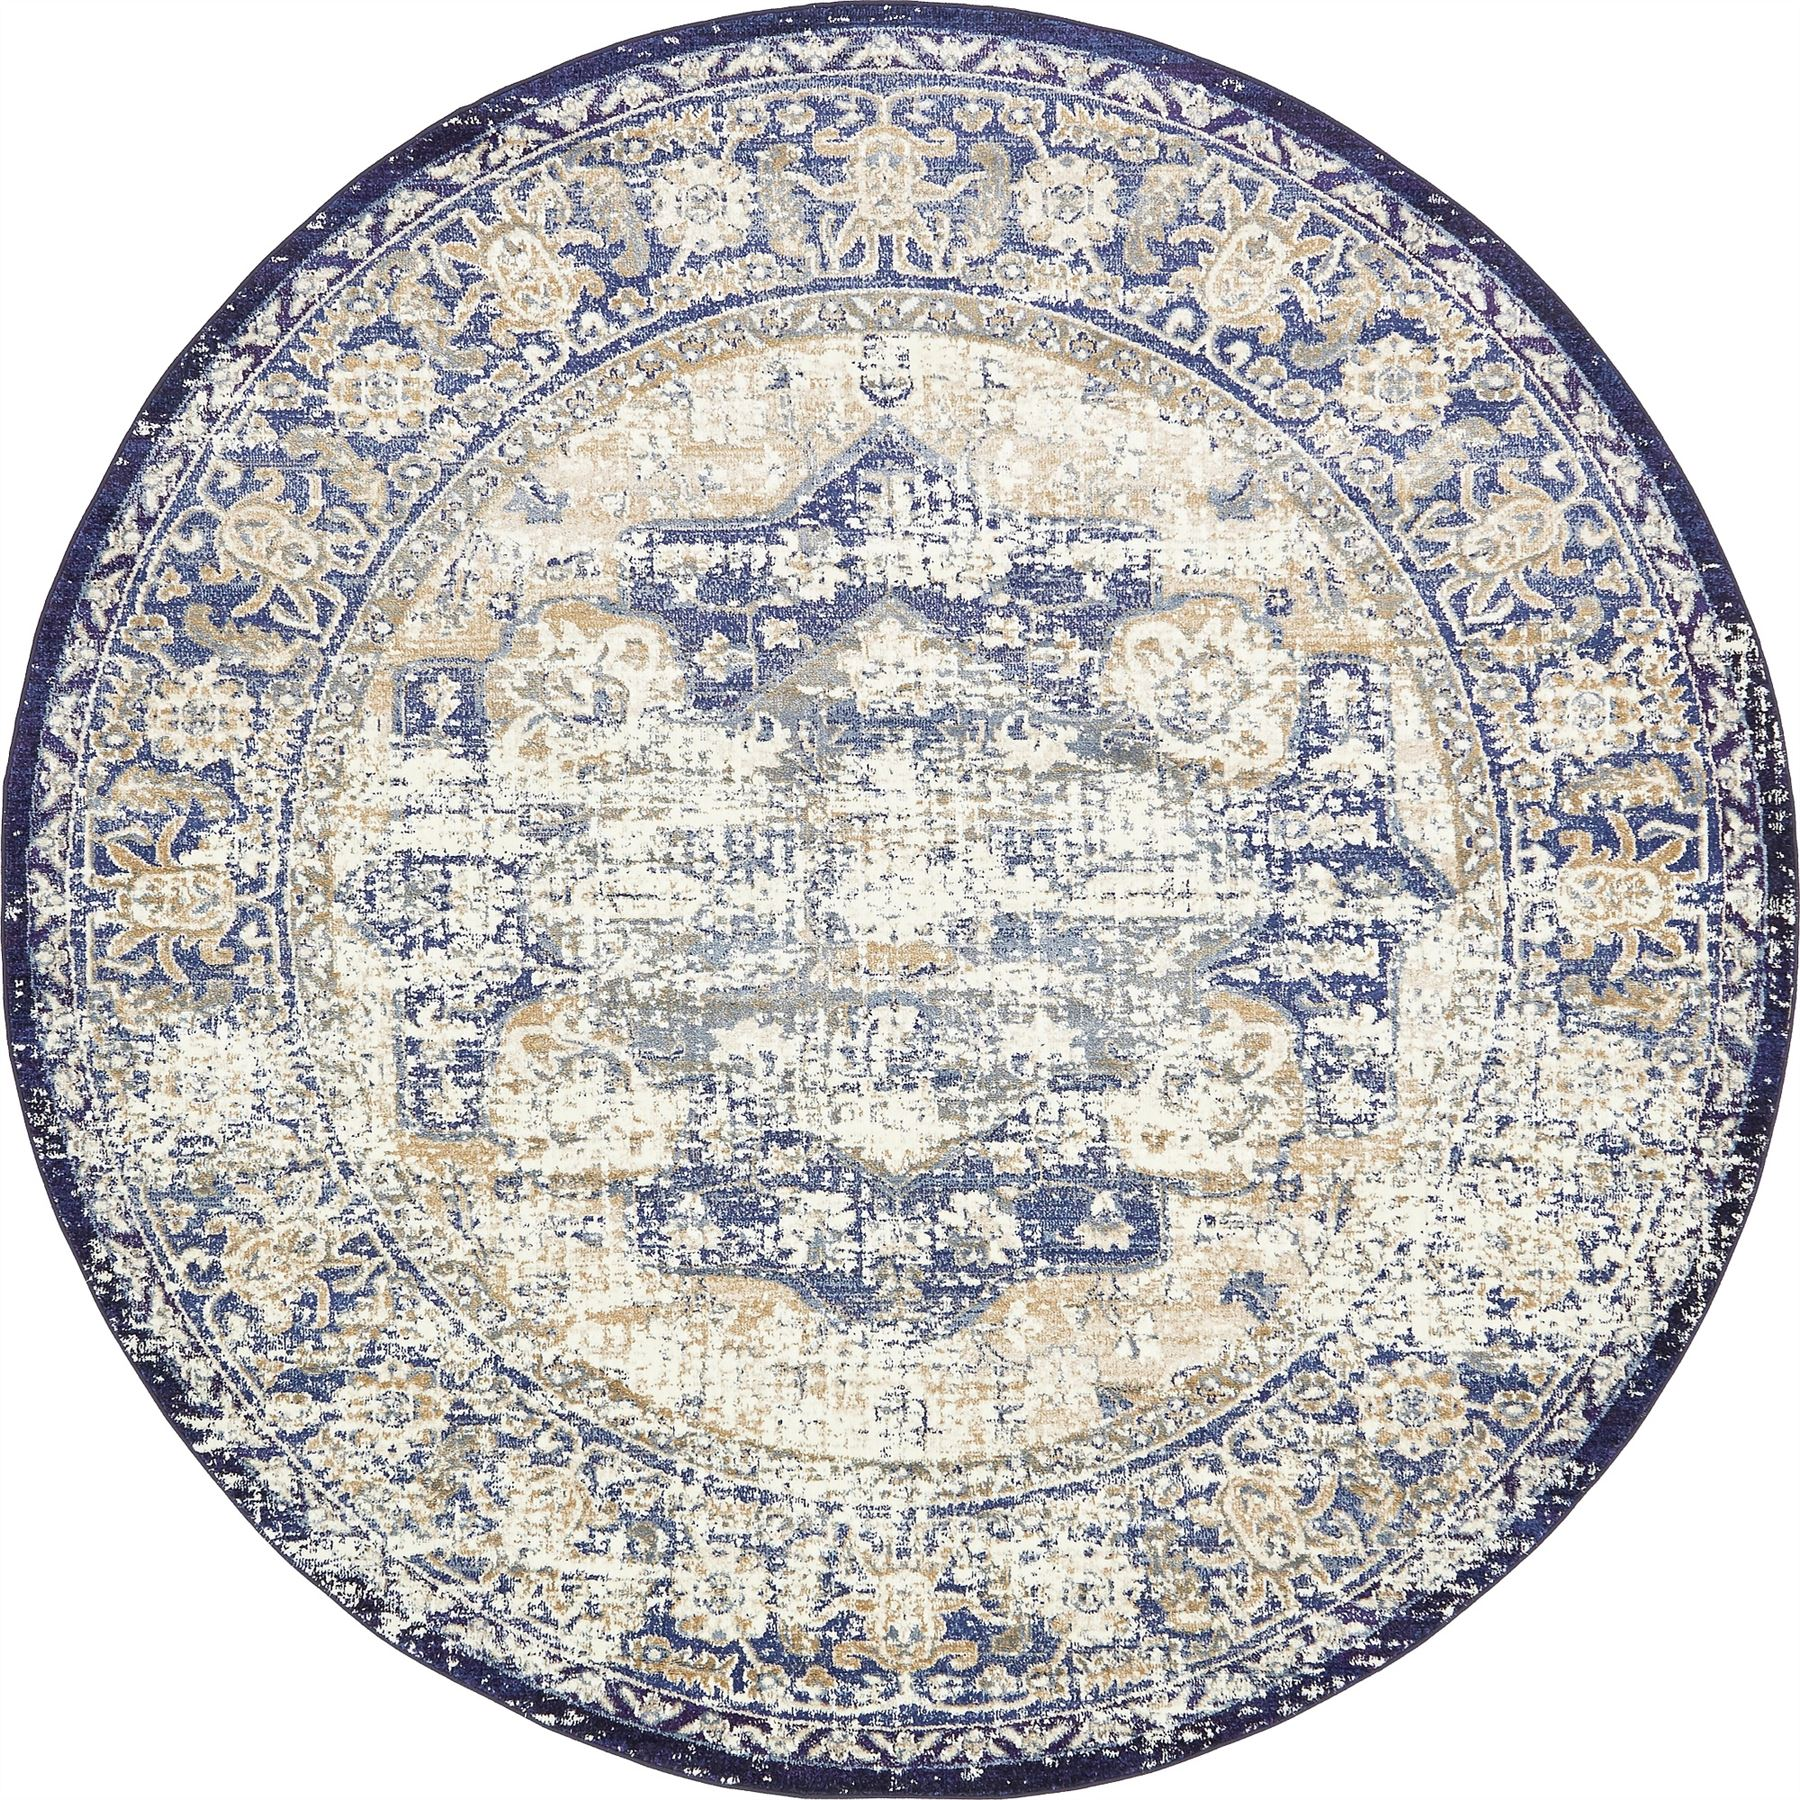 Medallion Style Rugs Traditional Carpets Over Dyed Vintage